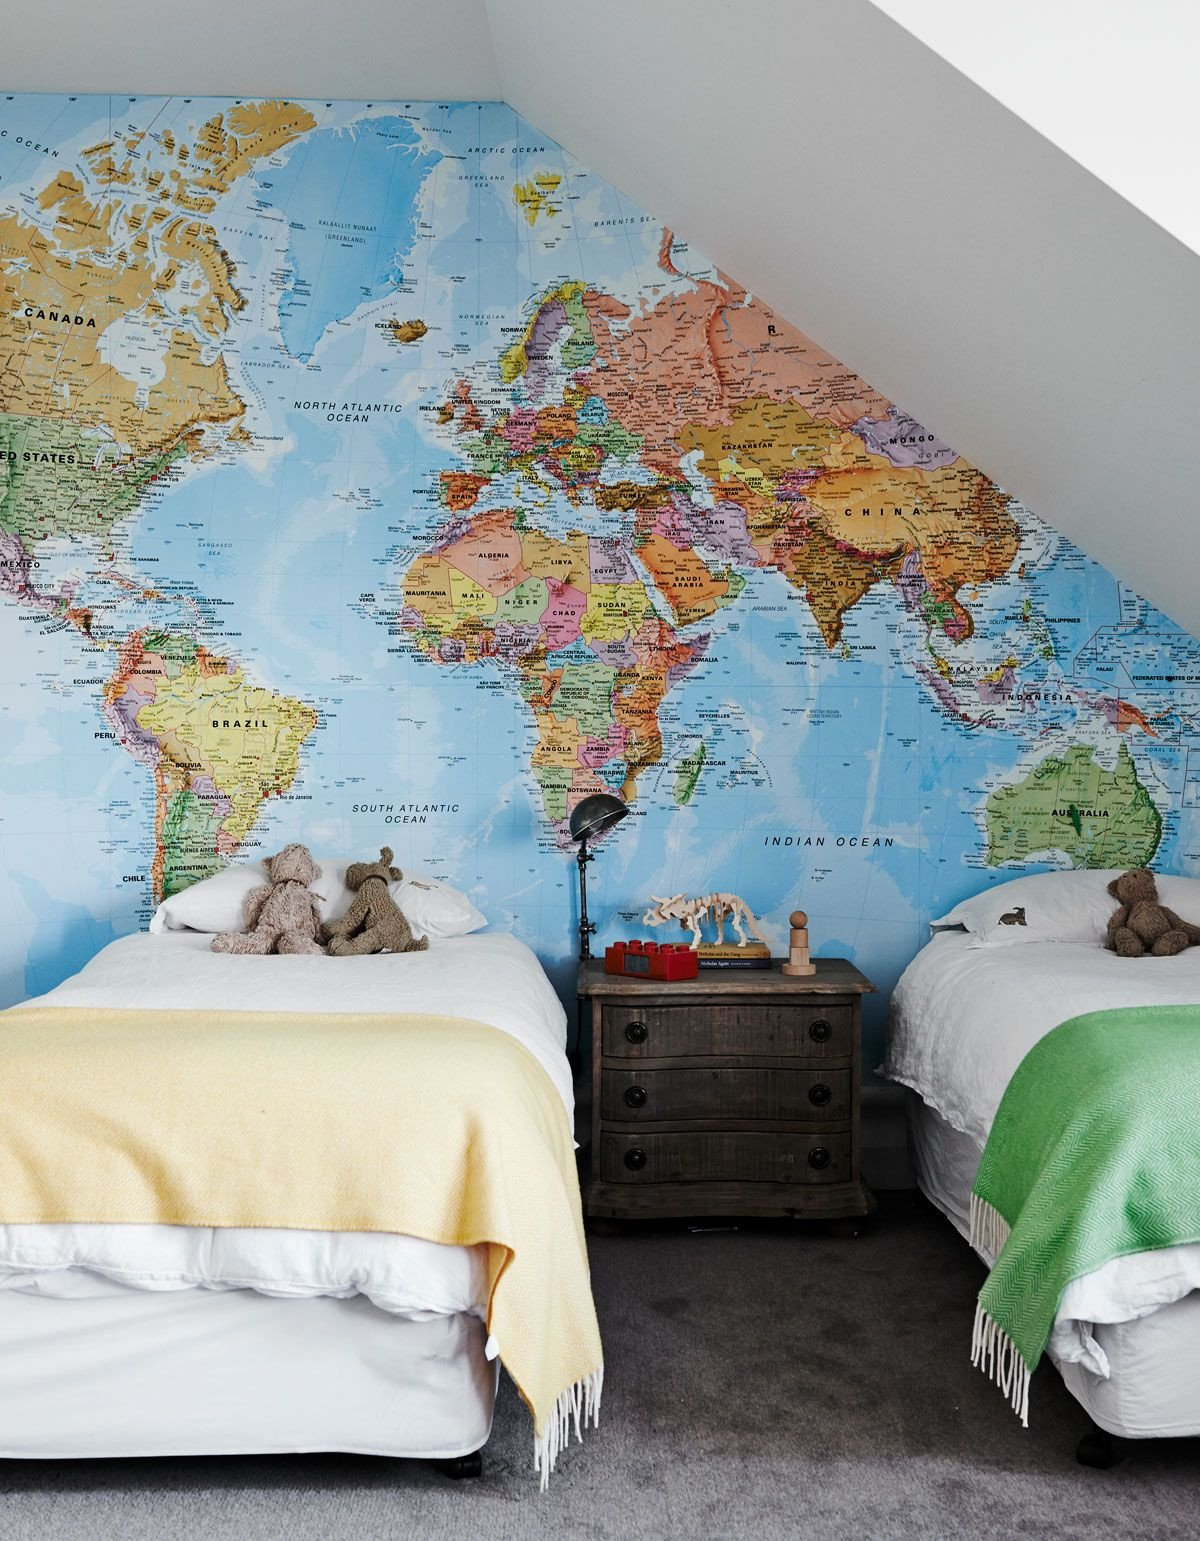 Wallpapers for Bedroom Wall Best Of Trending the Best World Map Murals and Map Wallpapers